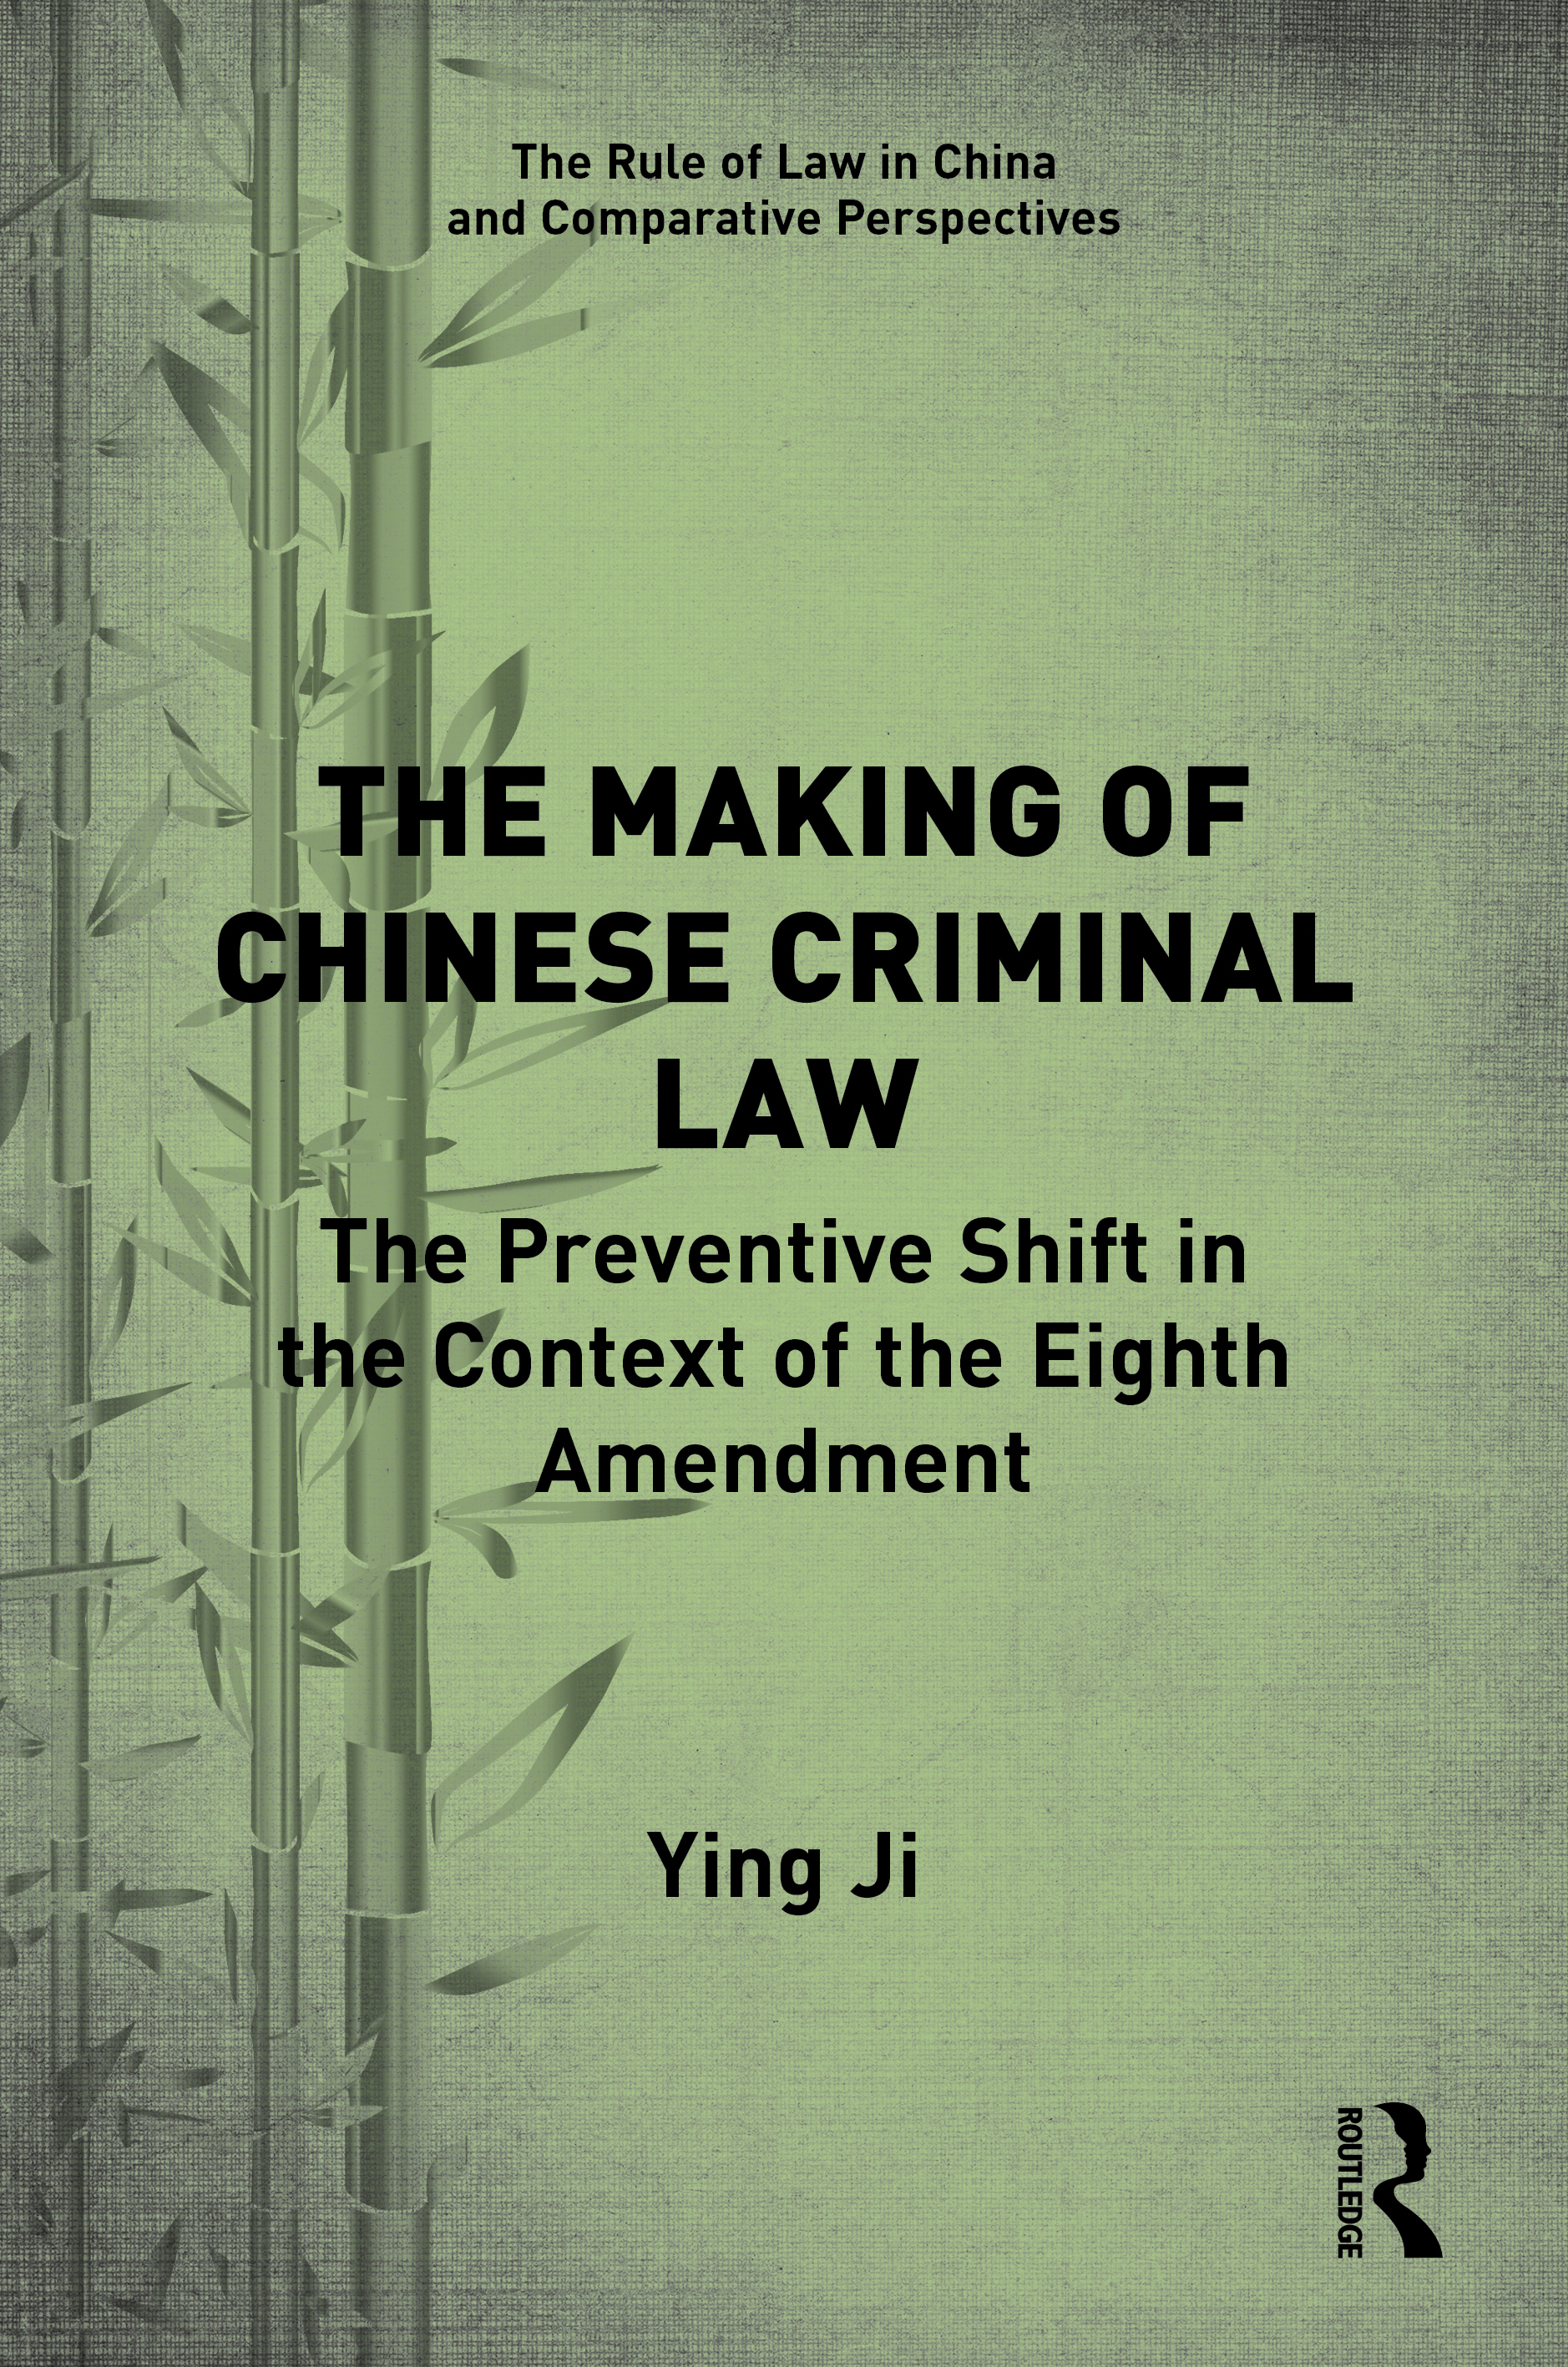 The Making of Chinese Criminal Law